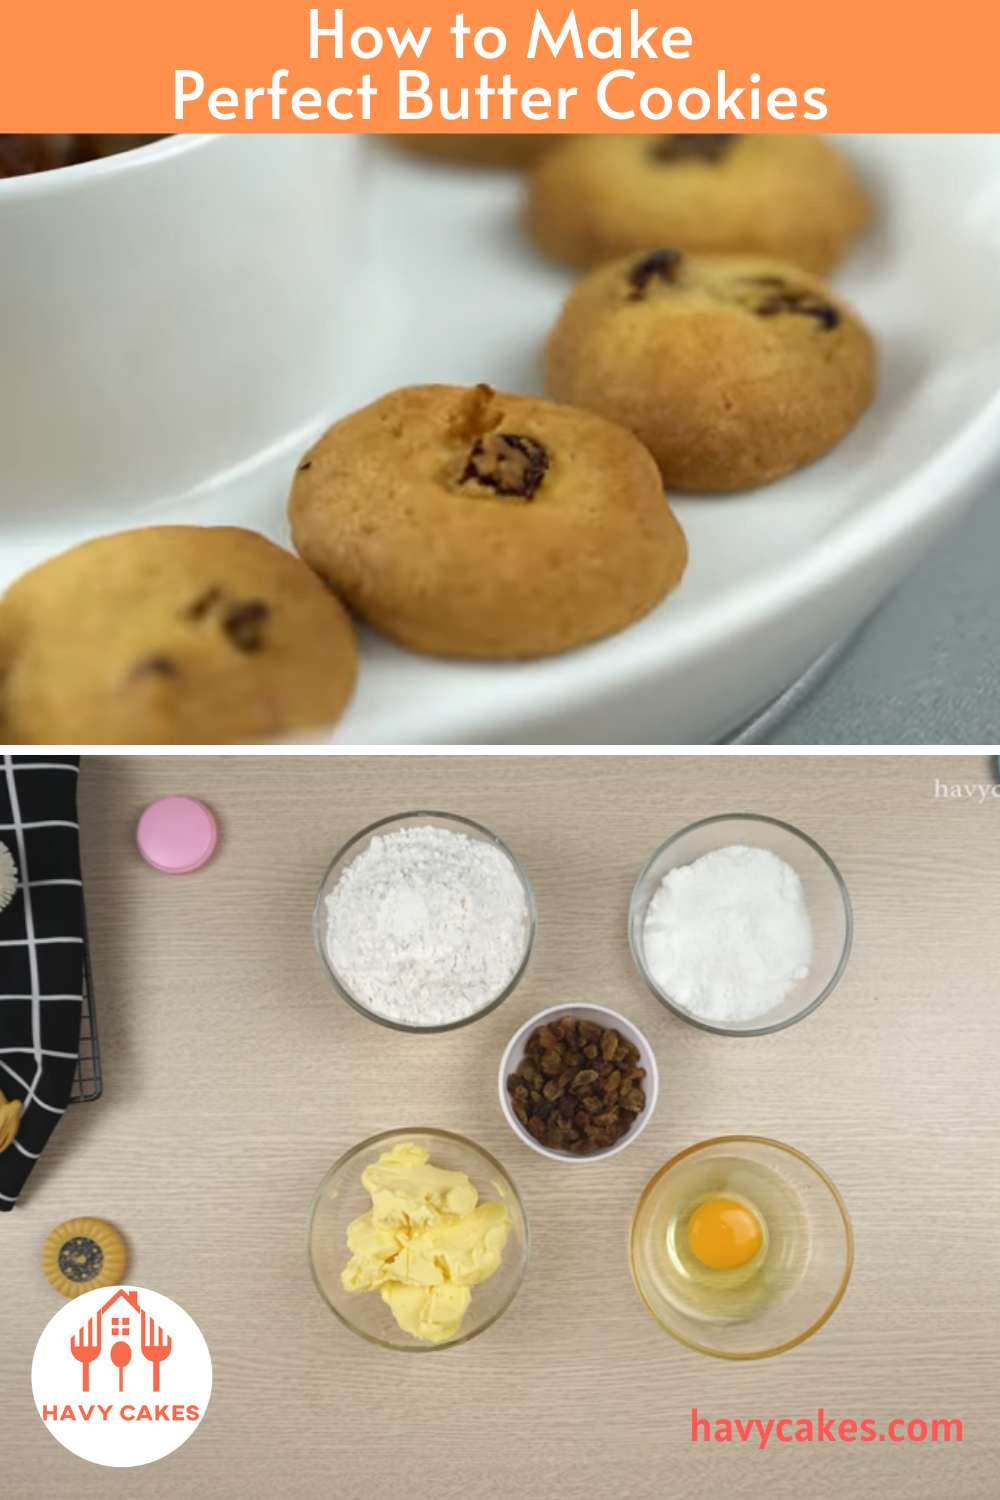 How to make Butter Cookies: Ingredients